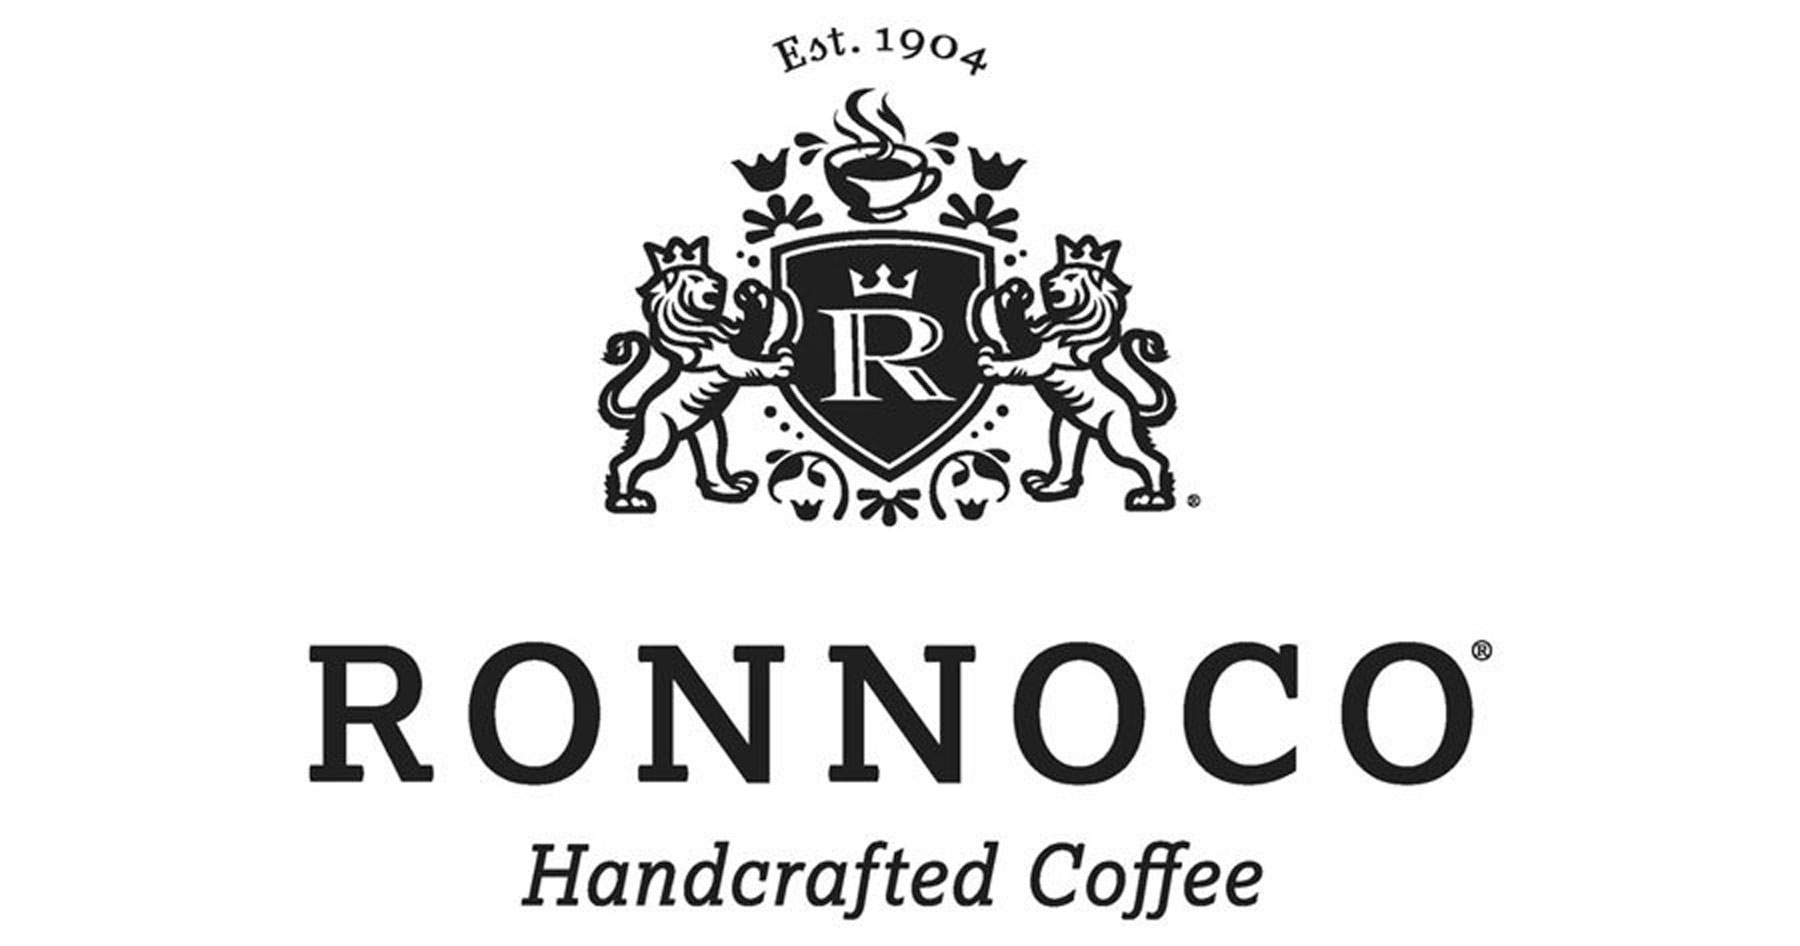 Ronnoco Credits Acquisitions and Leadership for Strong 2019